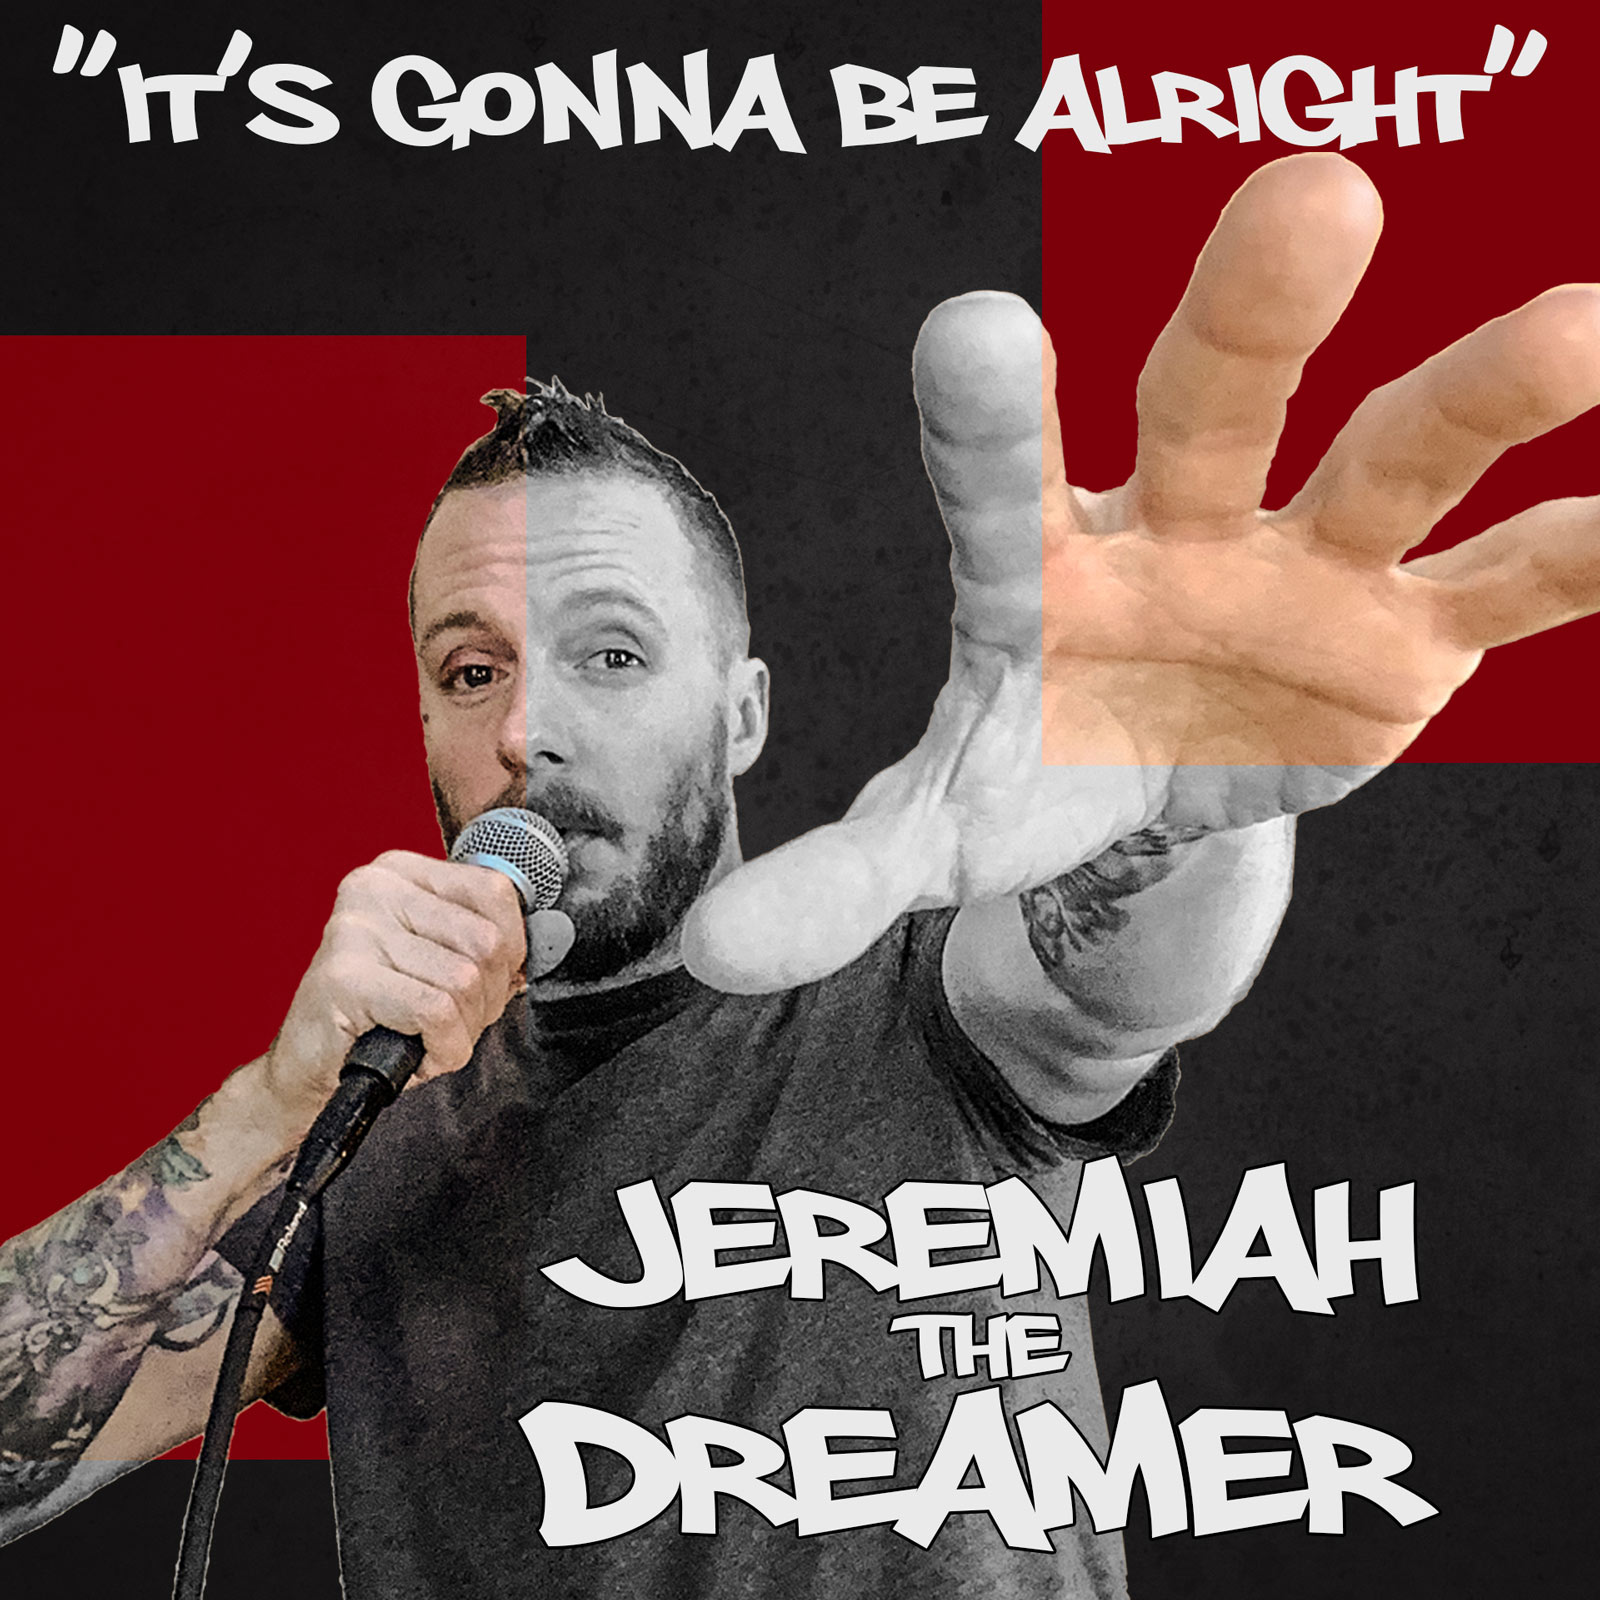 It's Gonna Be Alright by Jeremiah the Dreamer